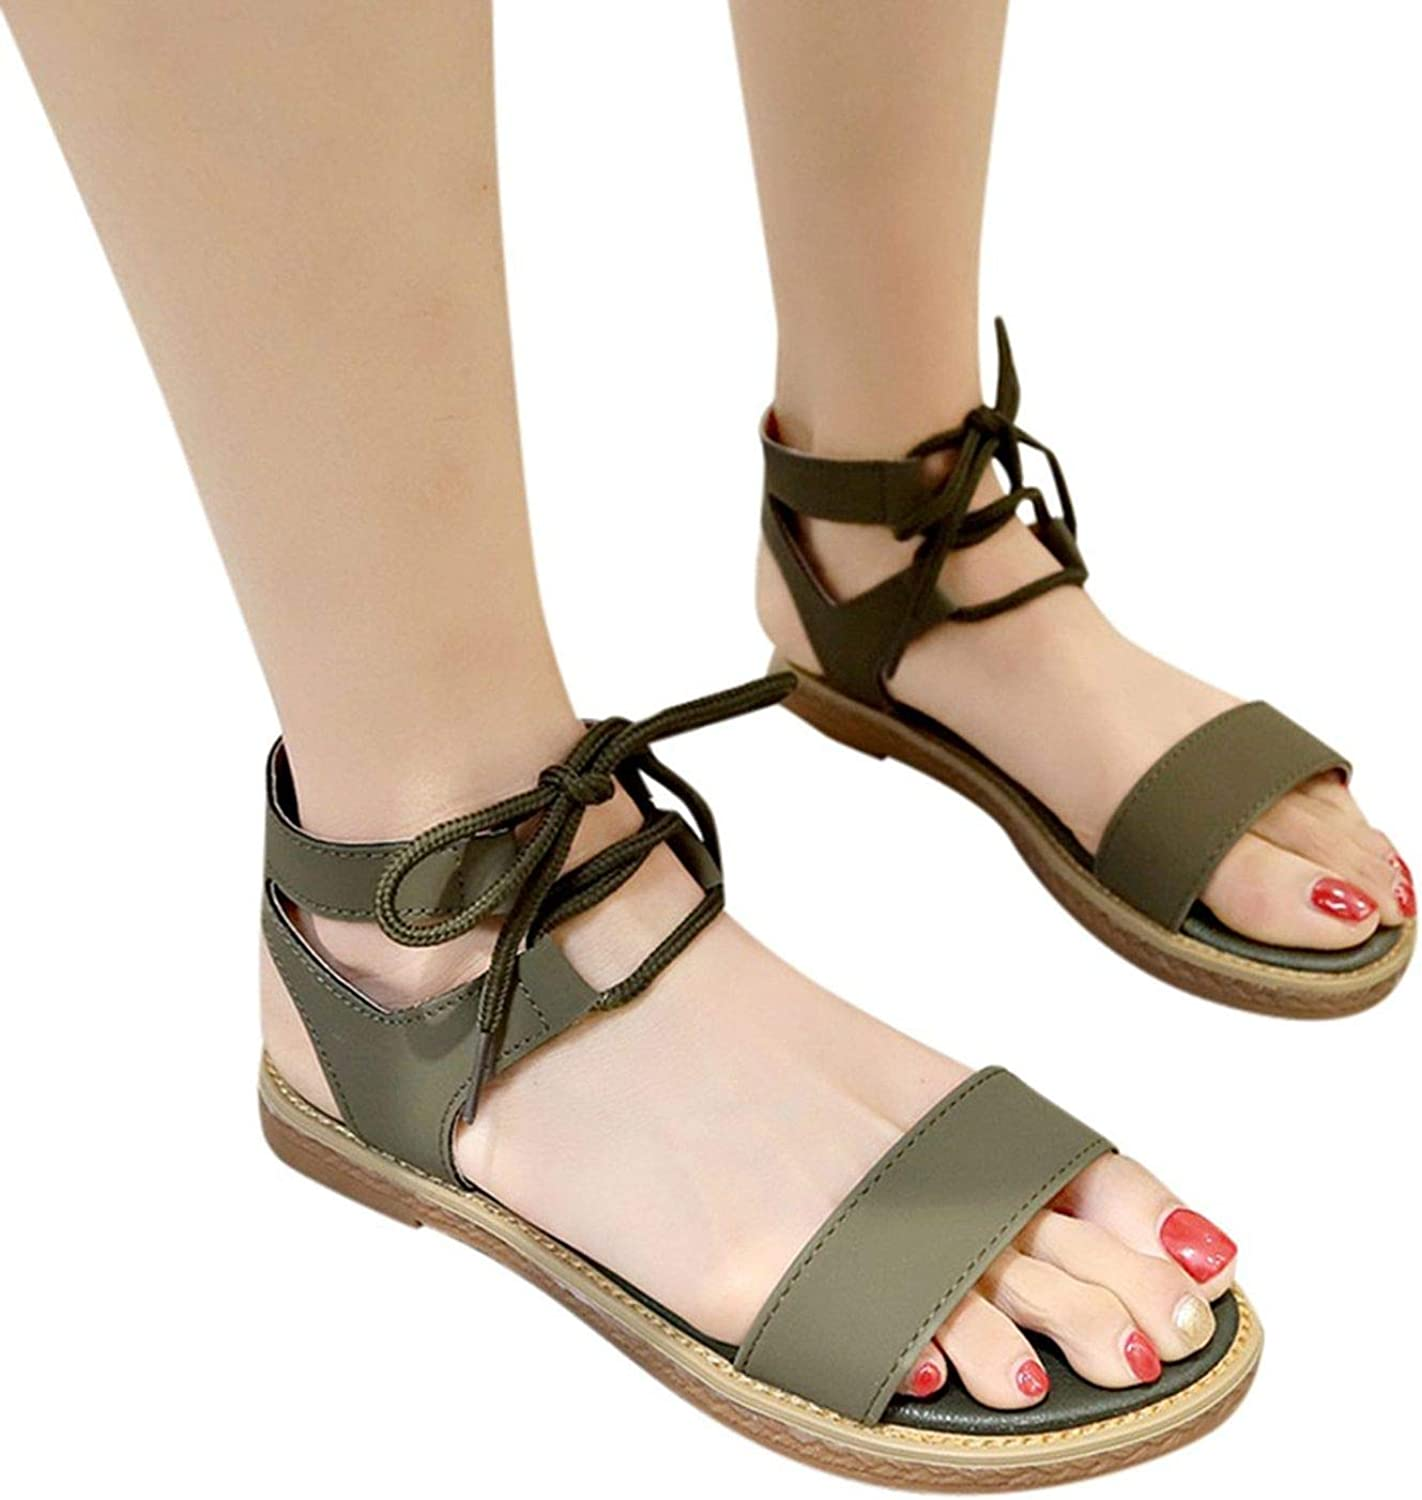 FINDYOU Women's Sandals Ankle Straps Summer Rome Beach Casual Low Heels Peep Toe Sandal Retro Wimen Leather shoes New